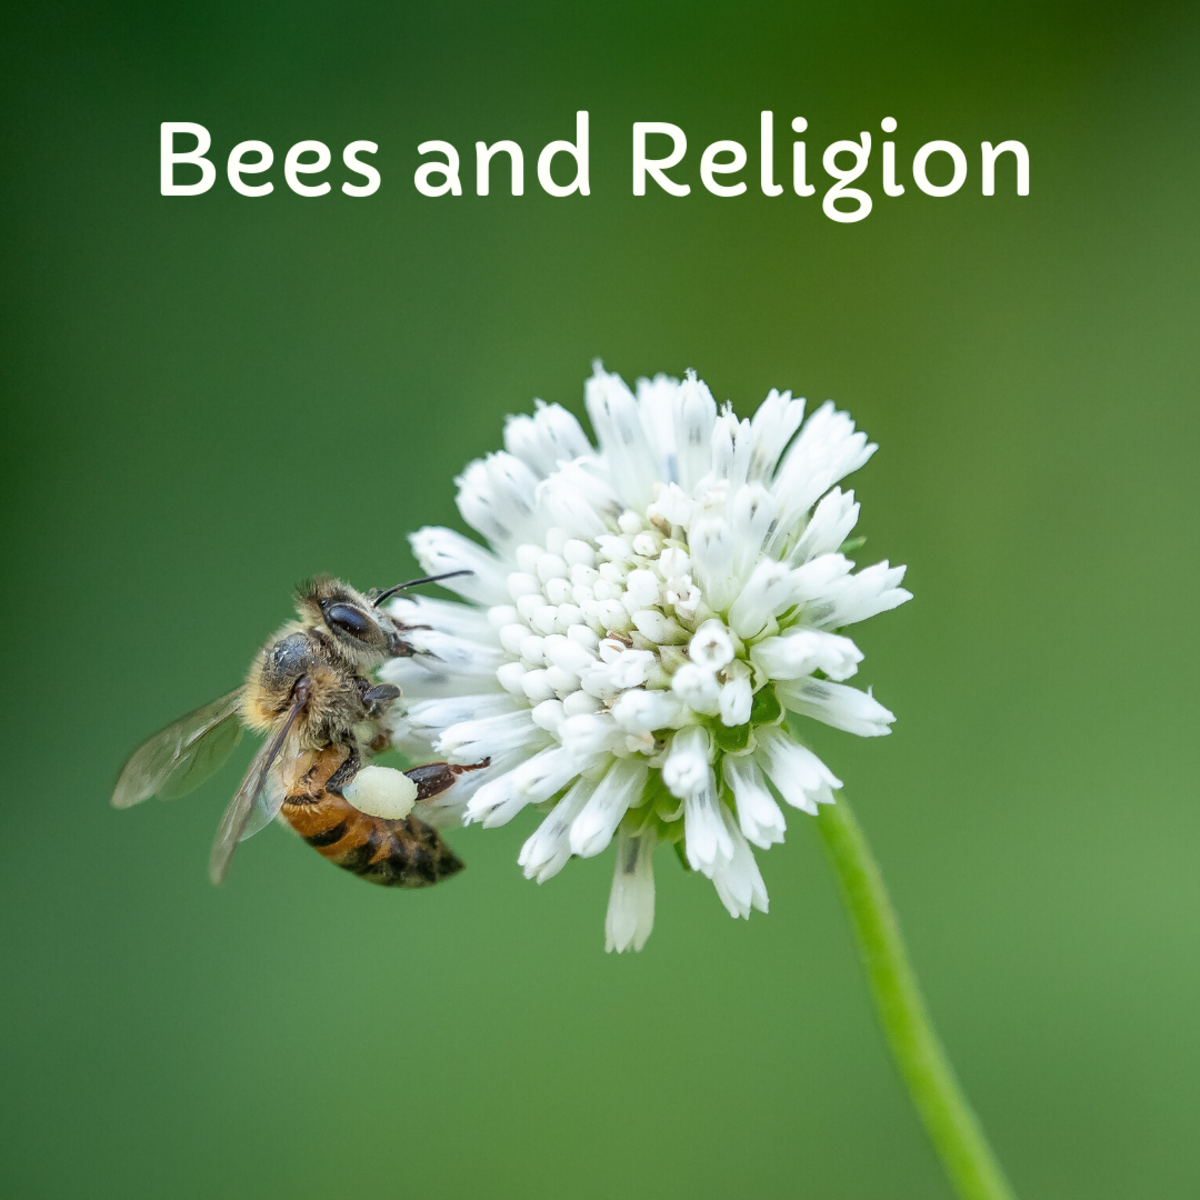 Many religions have powerful symbolism surrounding bees.